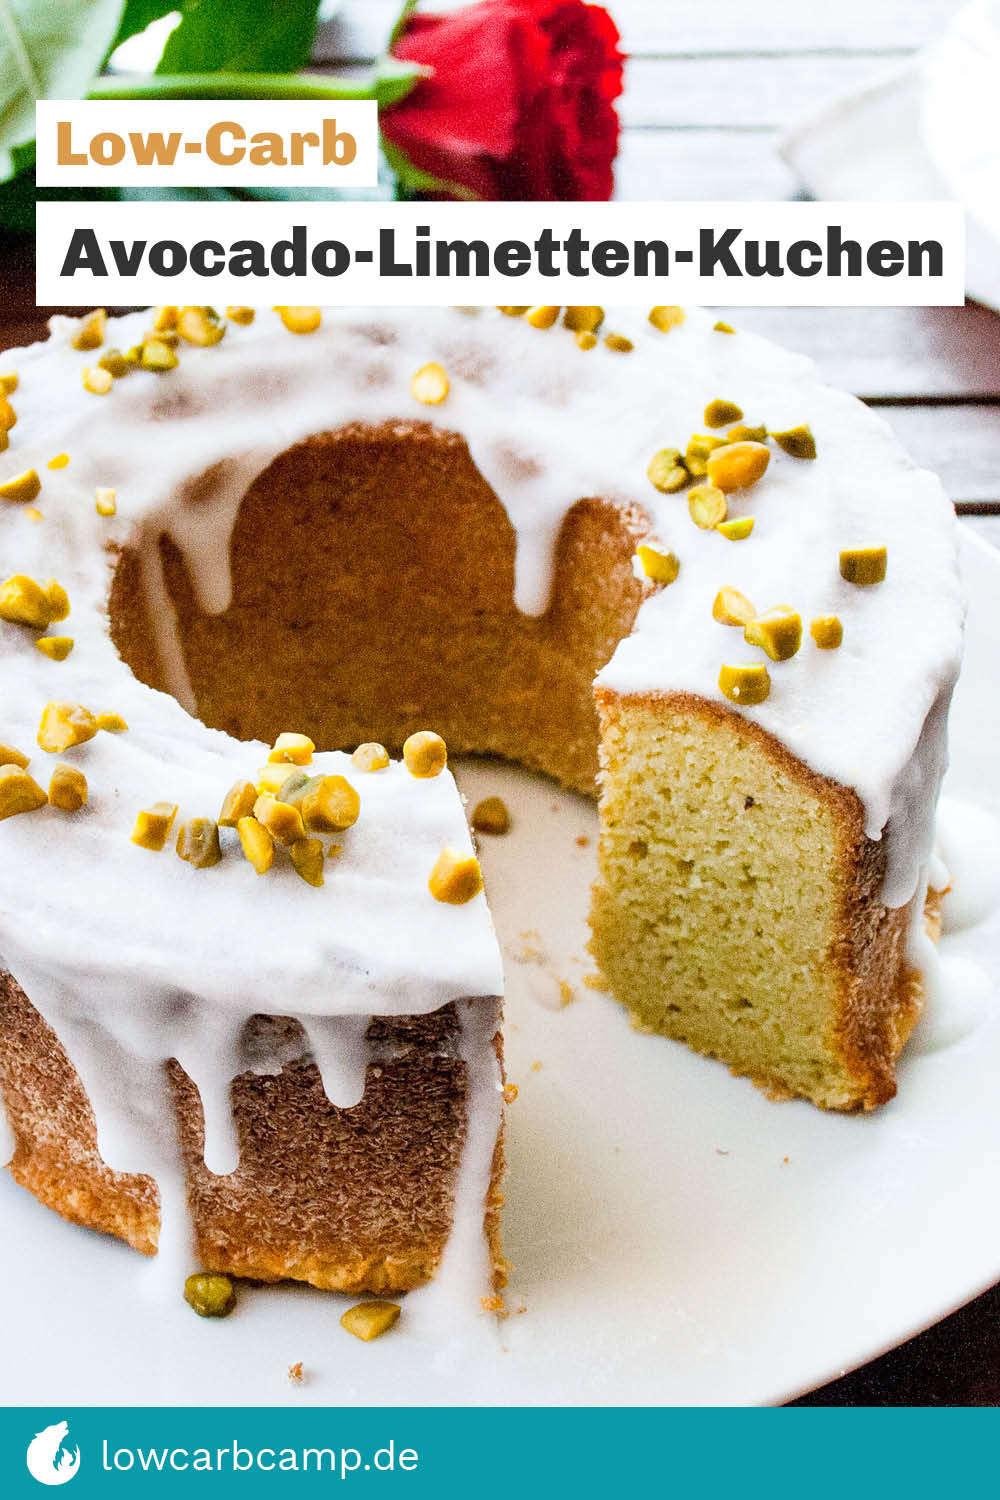 Low-Carb Avocado-Limetten-Kuchen